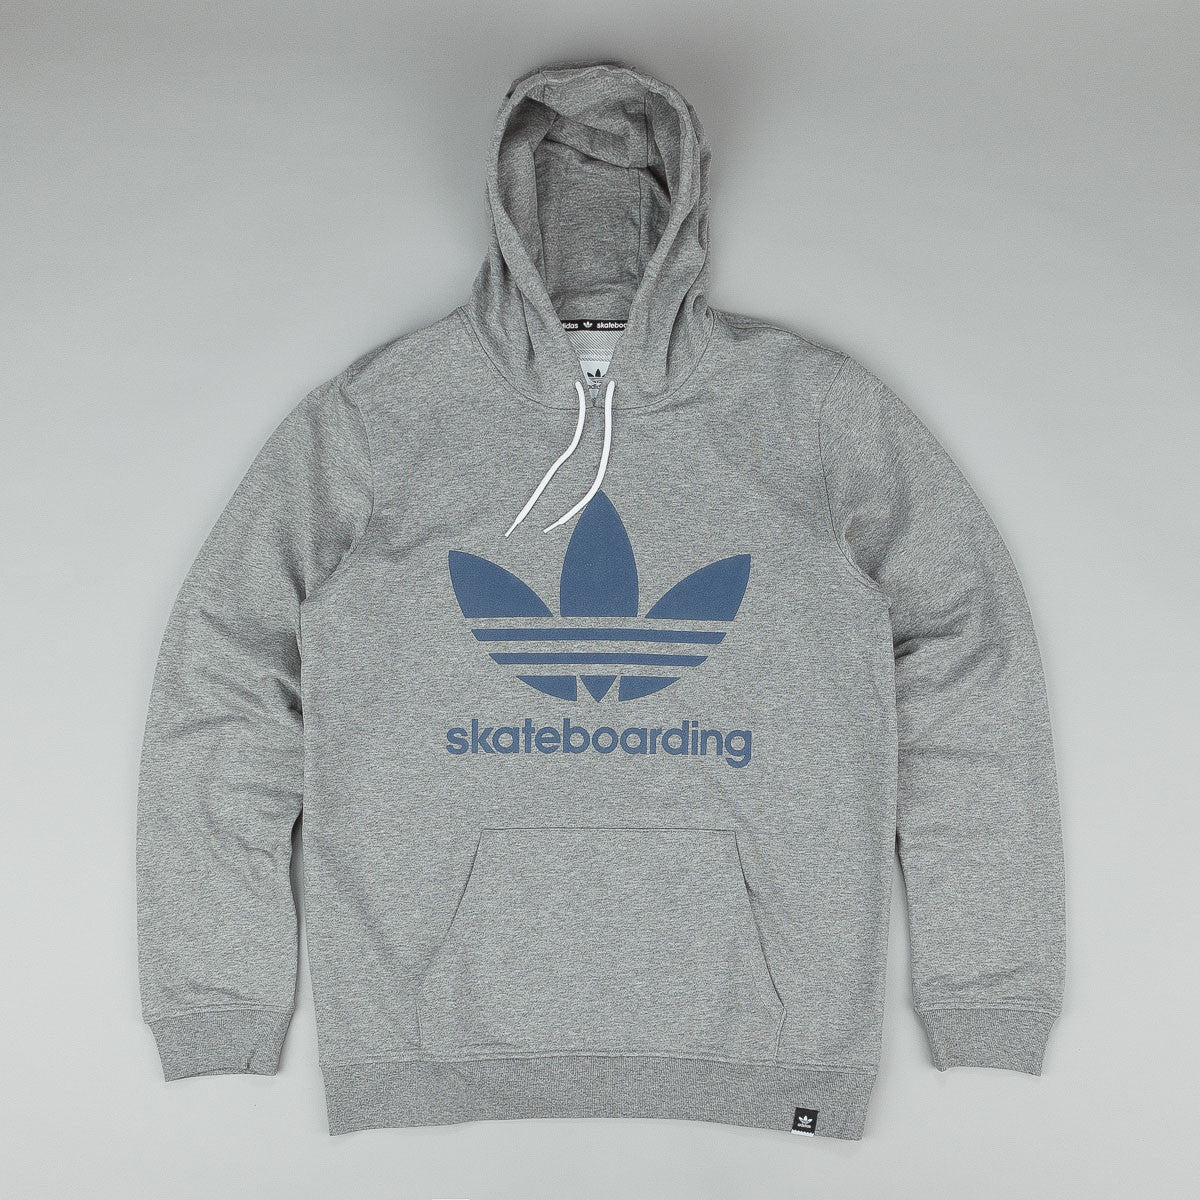 Adidas Adv Hooded Sweatshirt